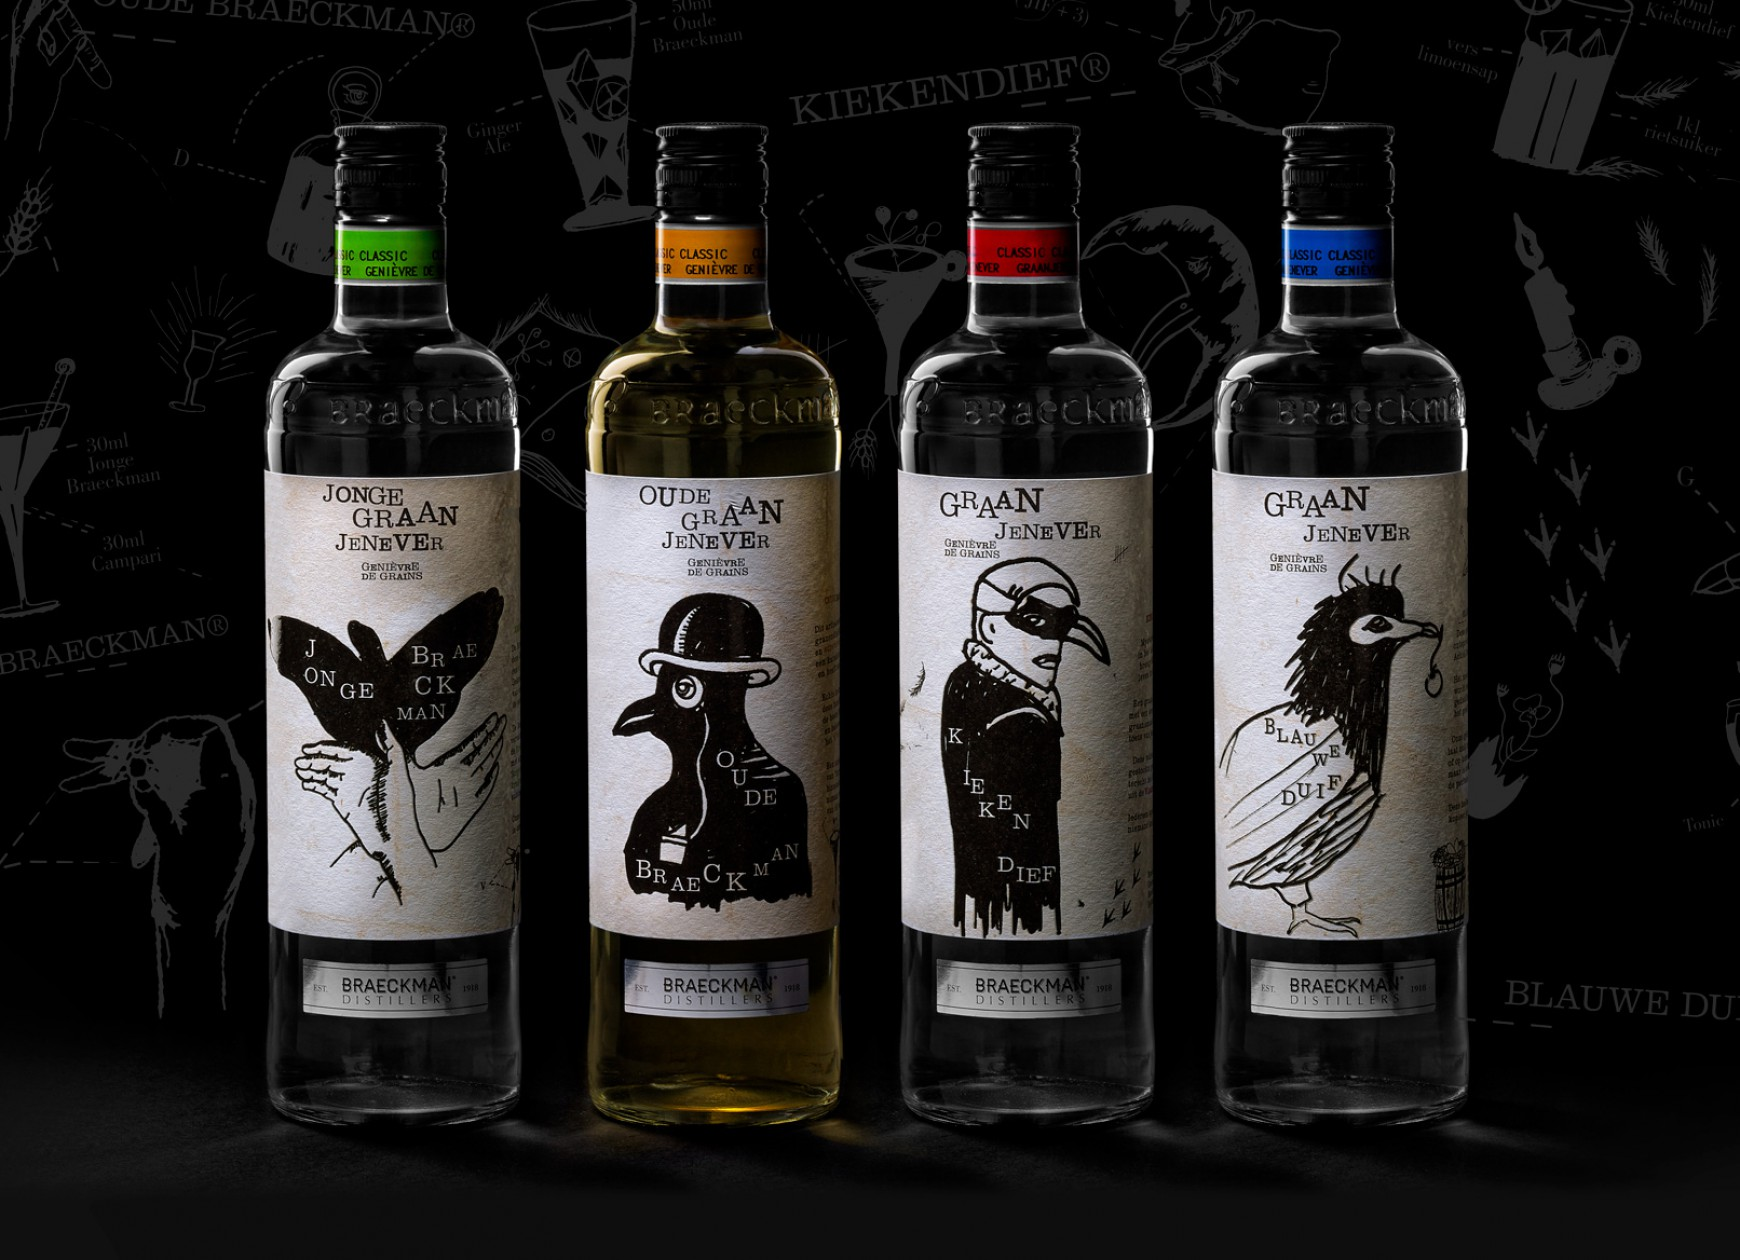 Quatre Mains package design - braeckman, genever, quatre mains